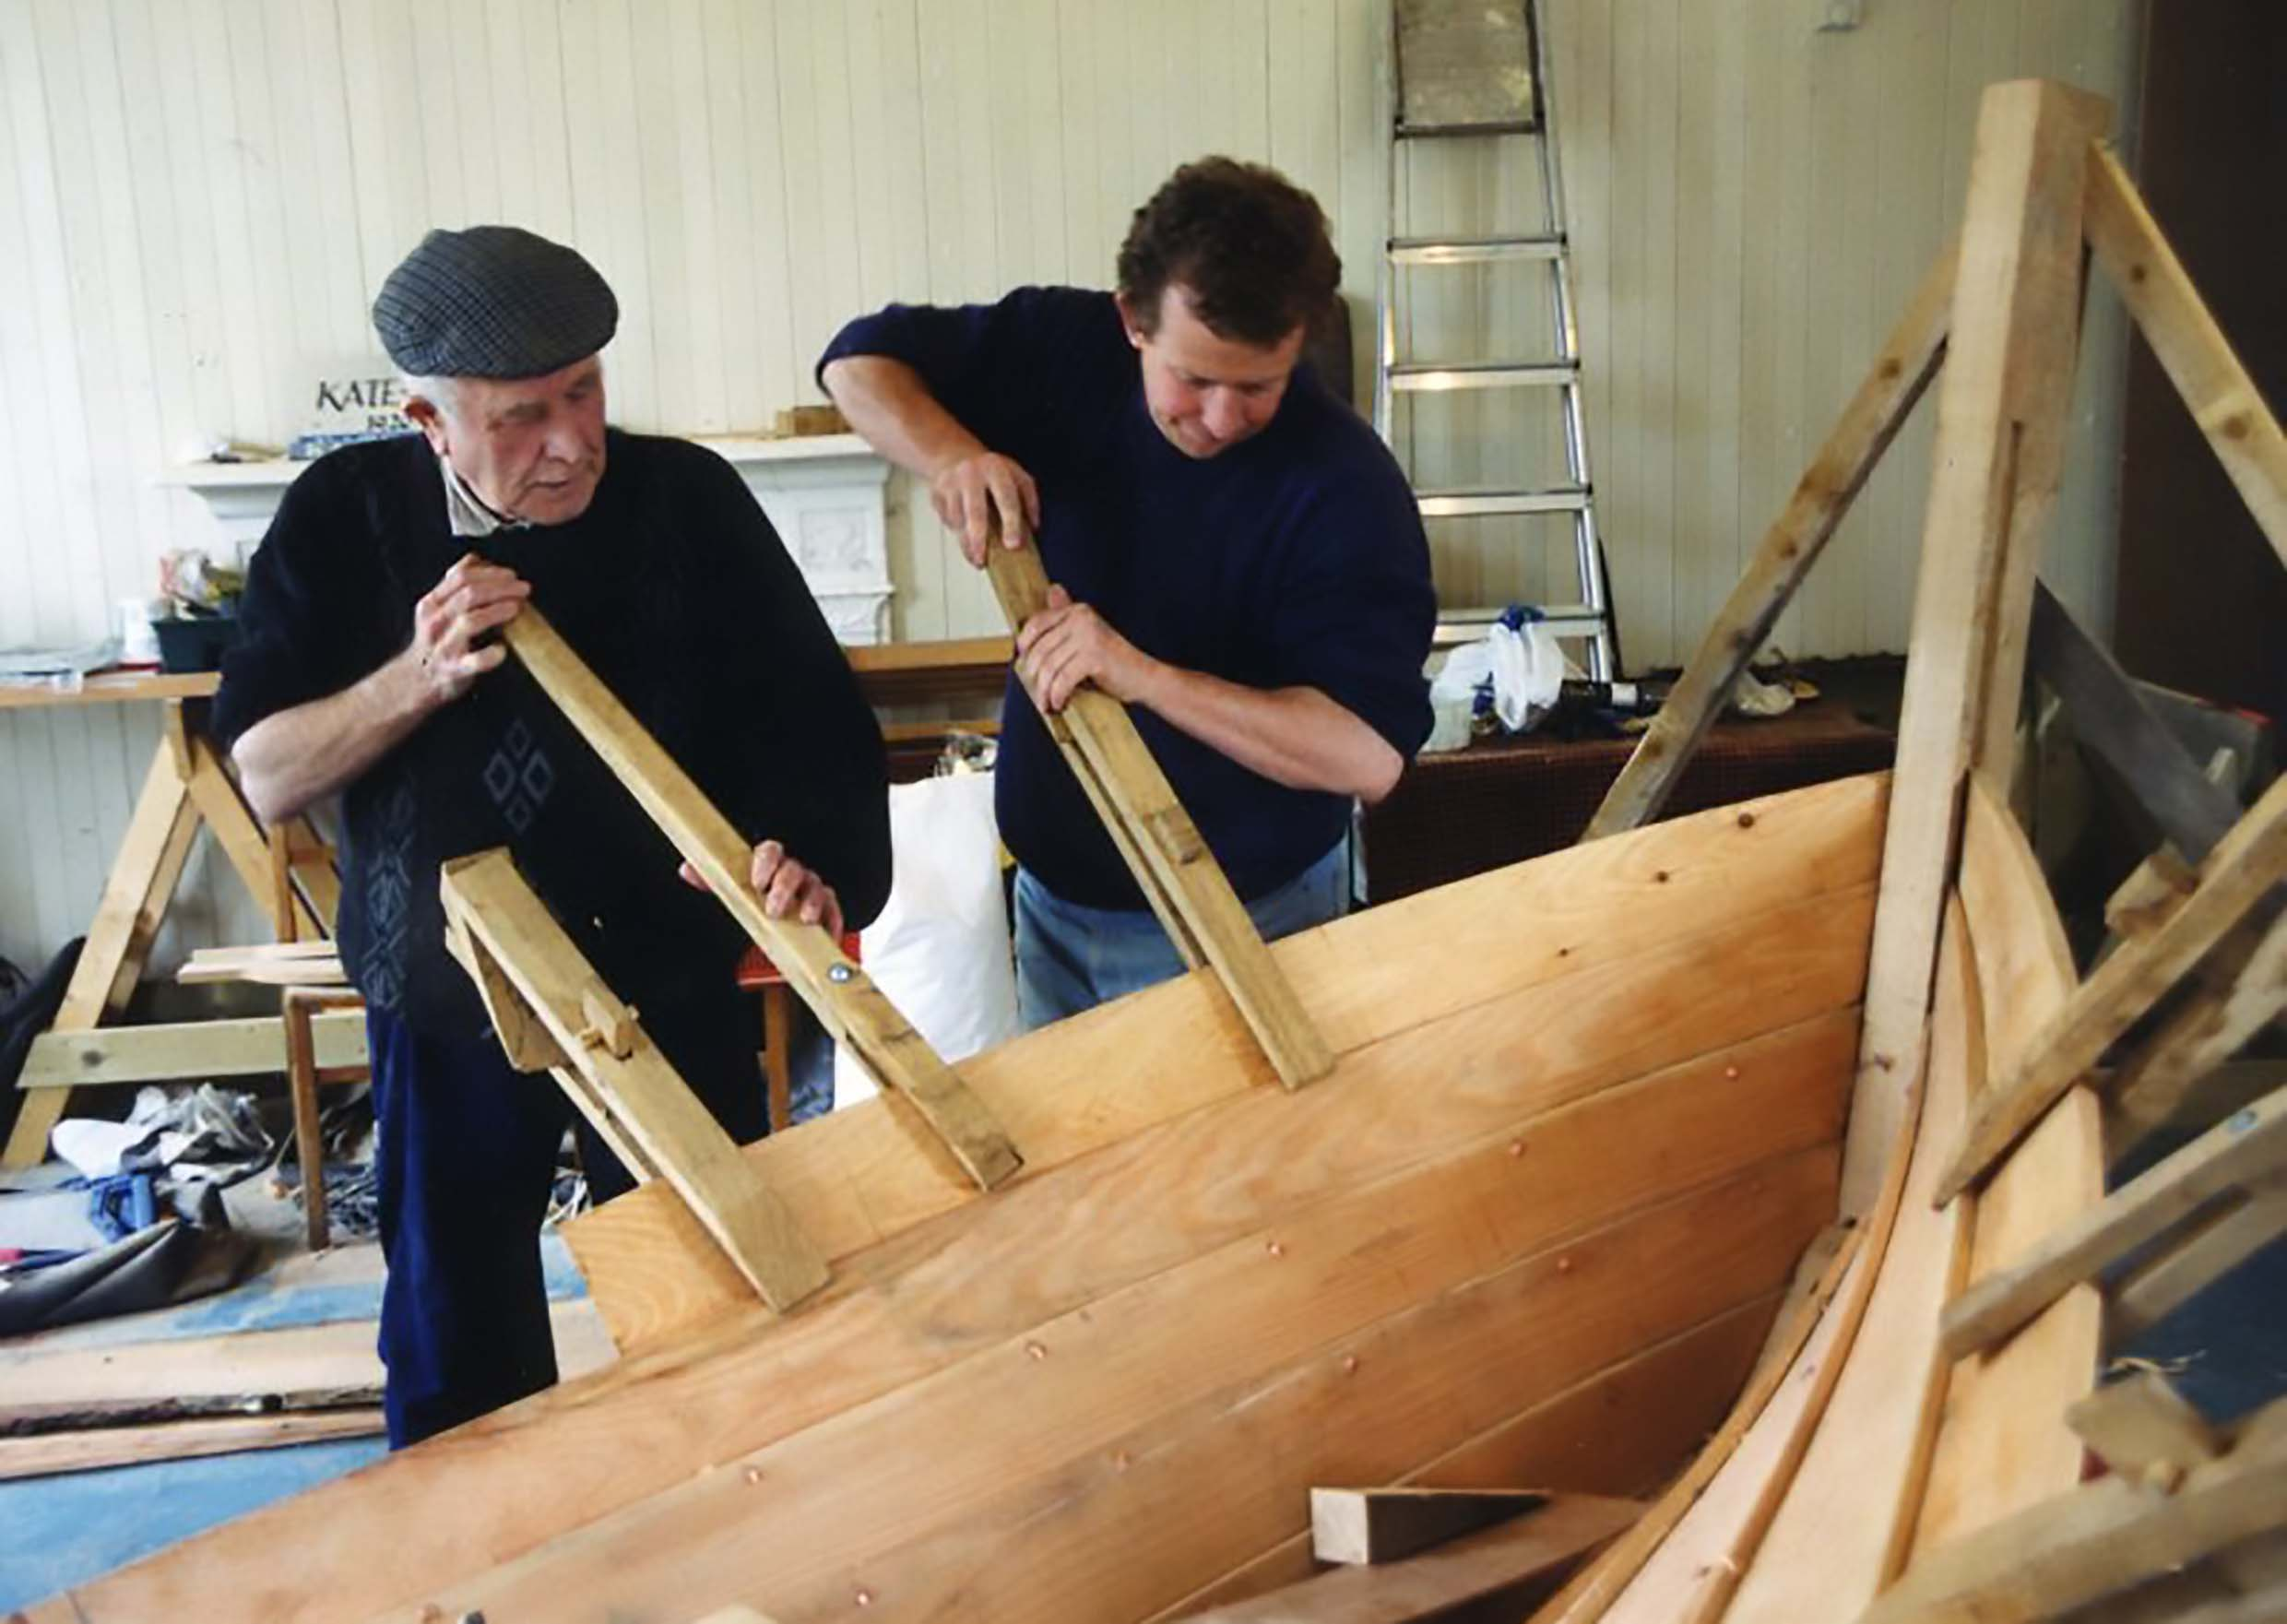 Boat Building tutors working on a Grimsay boat.